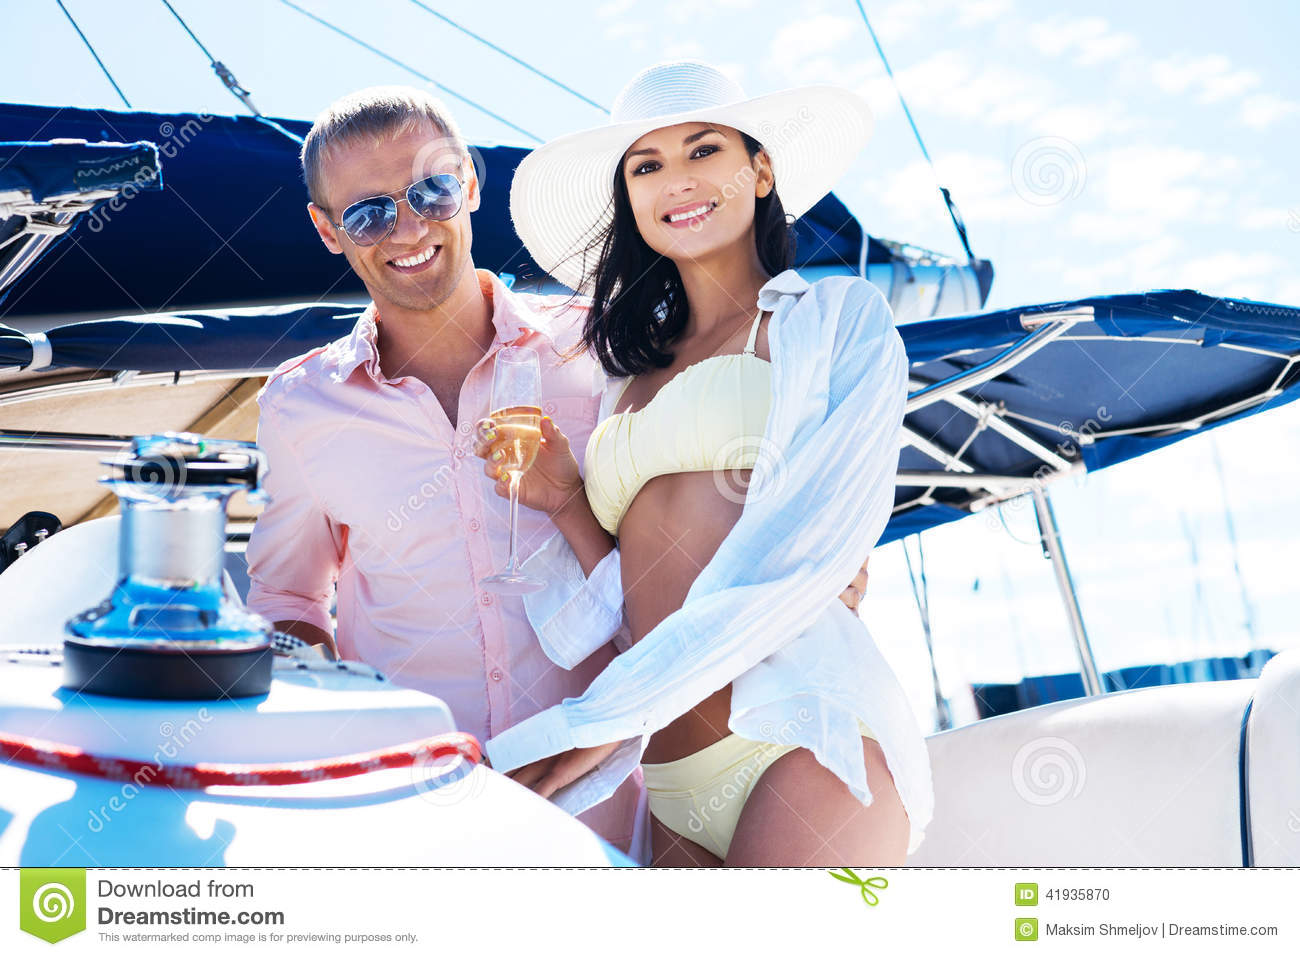 Attractive And Rich Couple Have A Party On A Boat Stock Photo - Image: 41935870